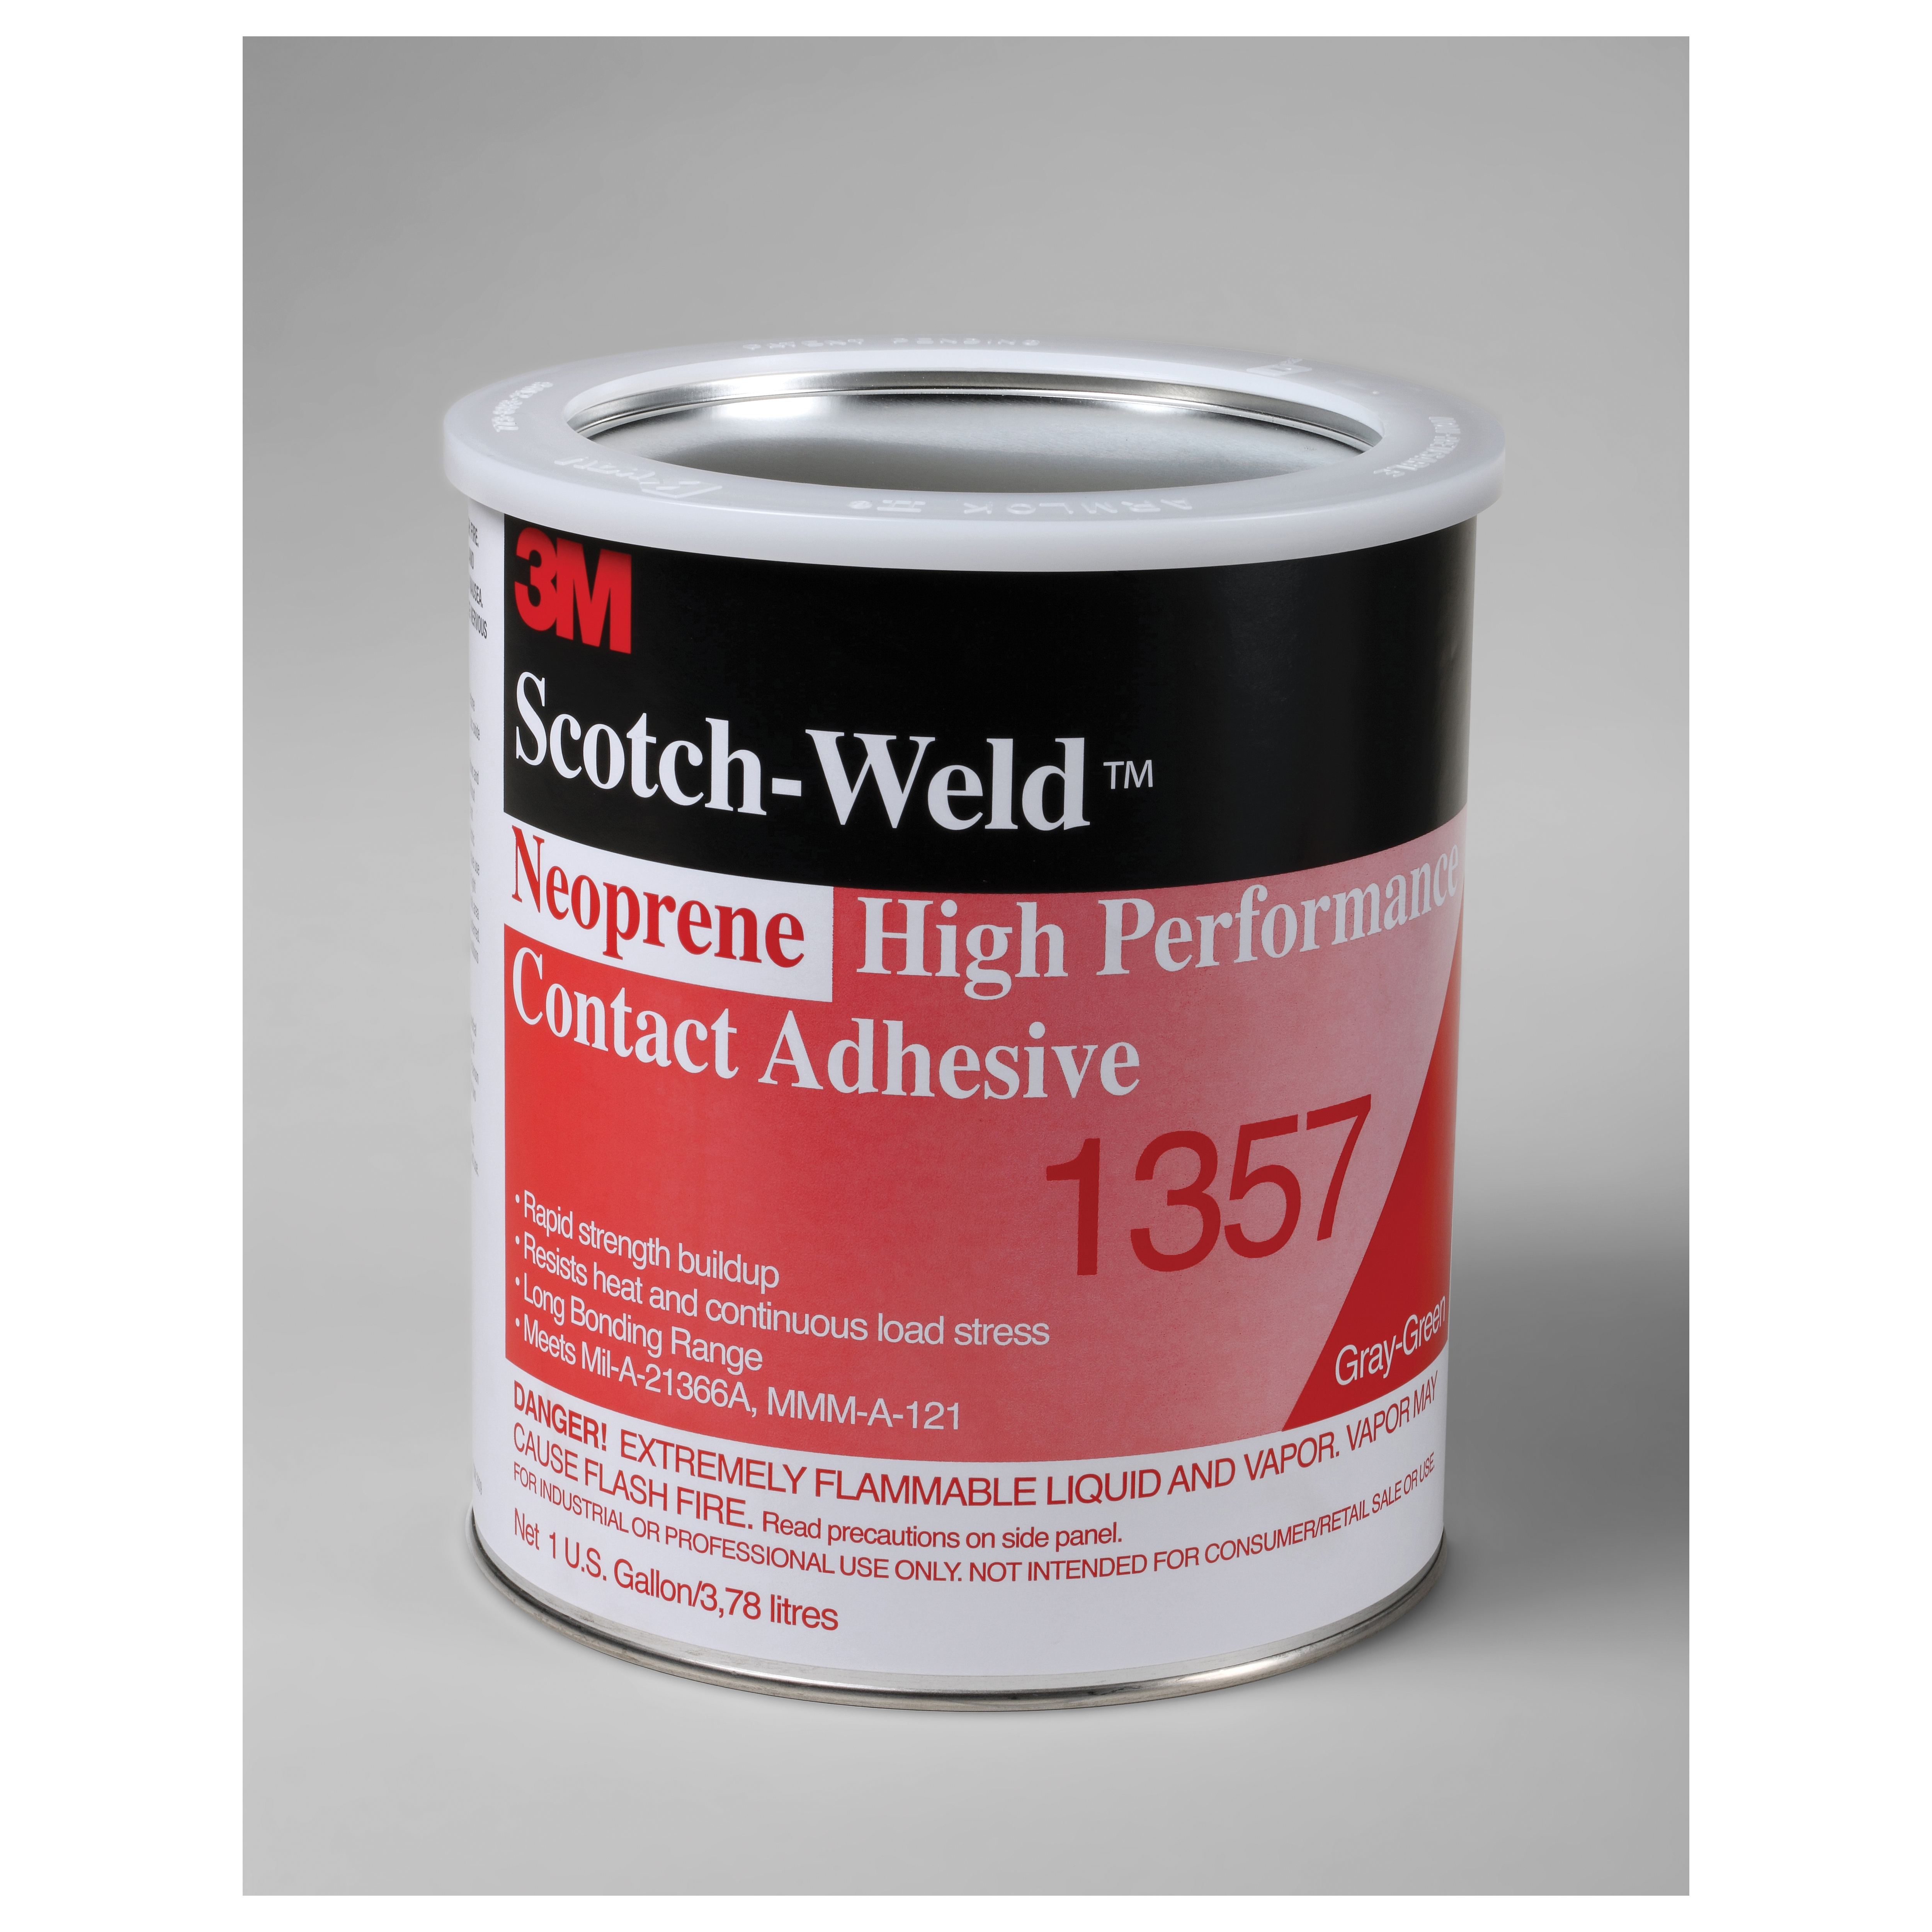 3M™ 021200-19892 1357 Flammable High Performance High Strength Contact Adhesive, 1 qt Can, Liquid, Grey/Green, 0.815